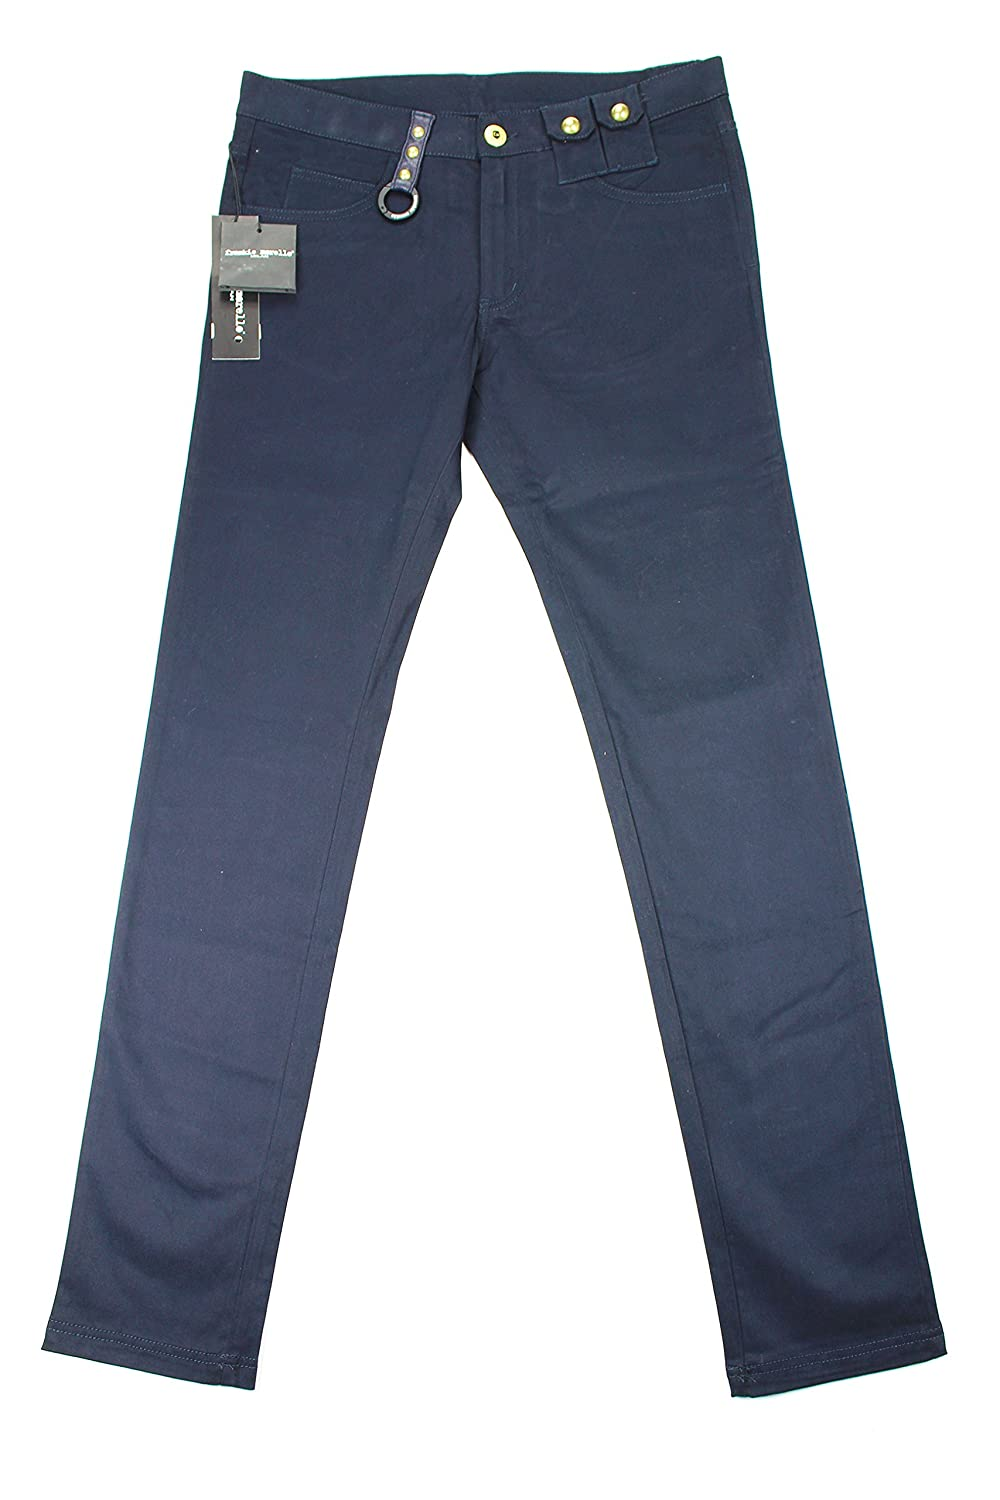 Frankie Morello Mens Slim Fit Jeans Size 32 US Regular Blue Cotton Blend